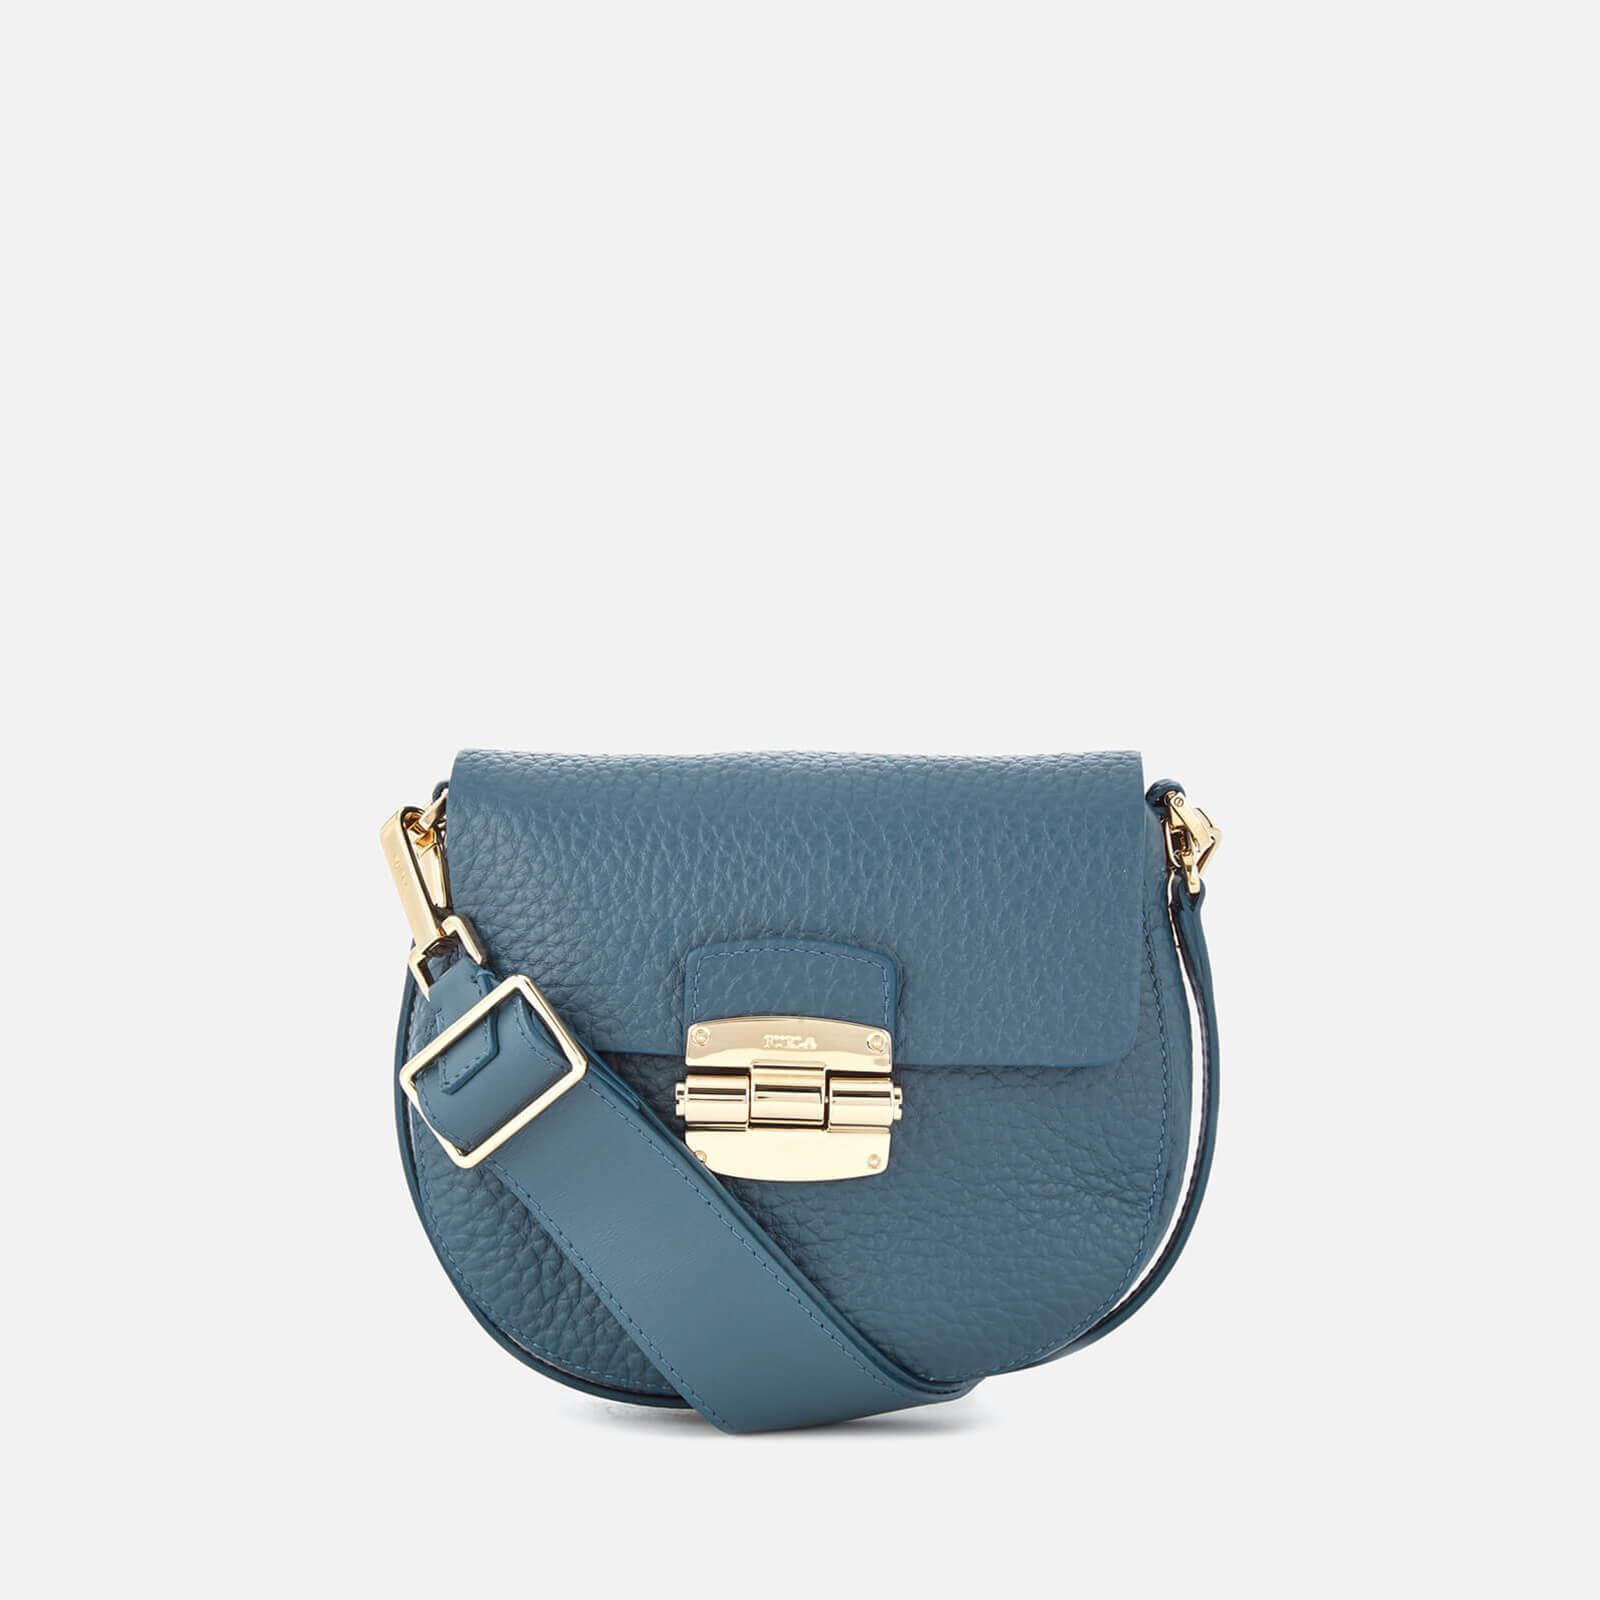 38bfc15d64a Furla Women s Club Mini Cross Body Bag - Blue Womens Accessories - Free UK  Delivery over